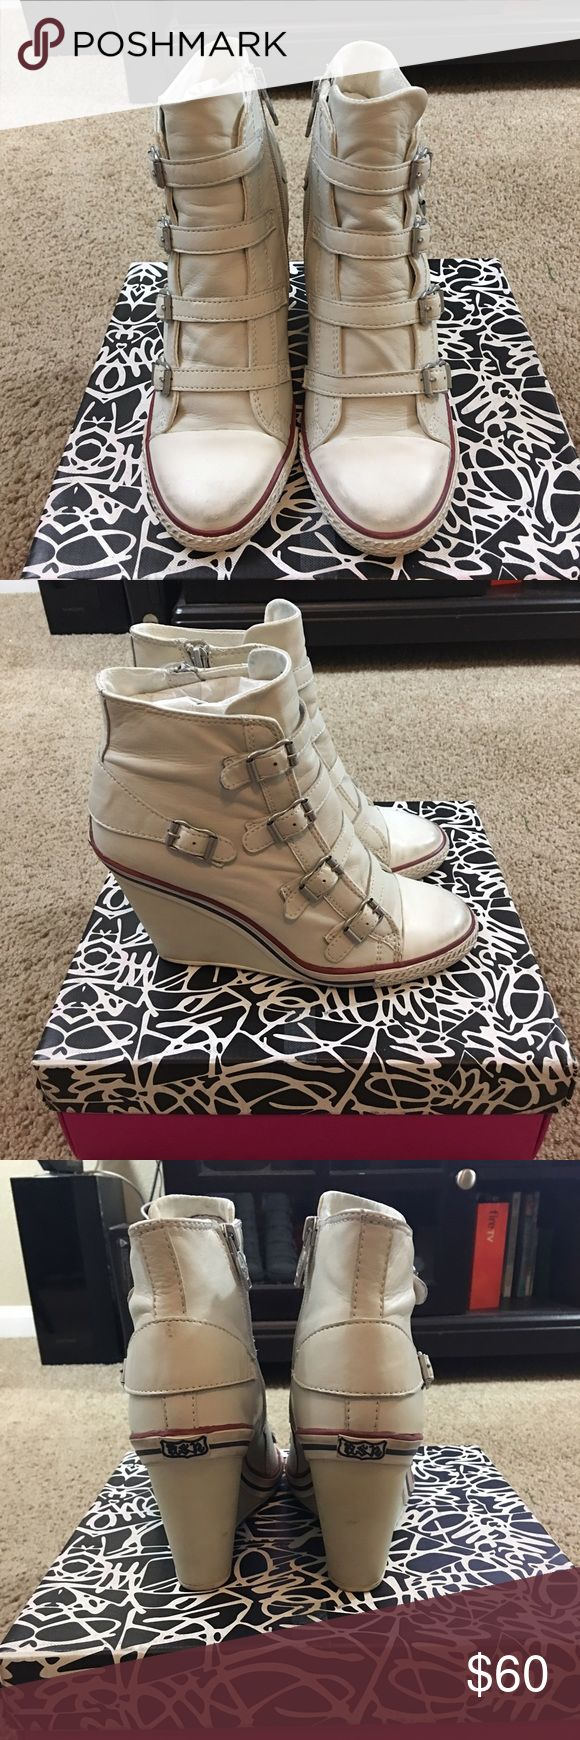 Ash white leather wedges in good used condition Ash white leather wedges in good used condition size 9 Ash Shoes Wedges